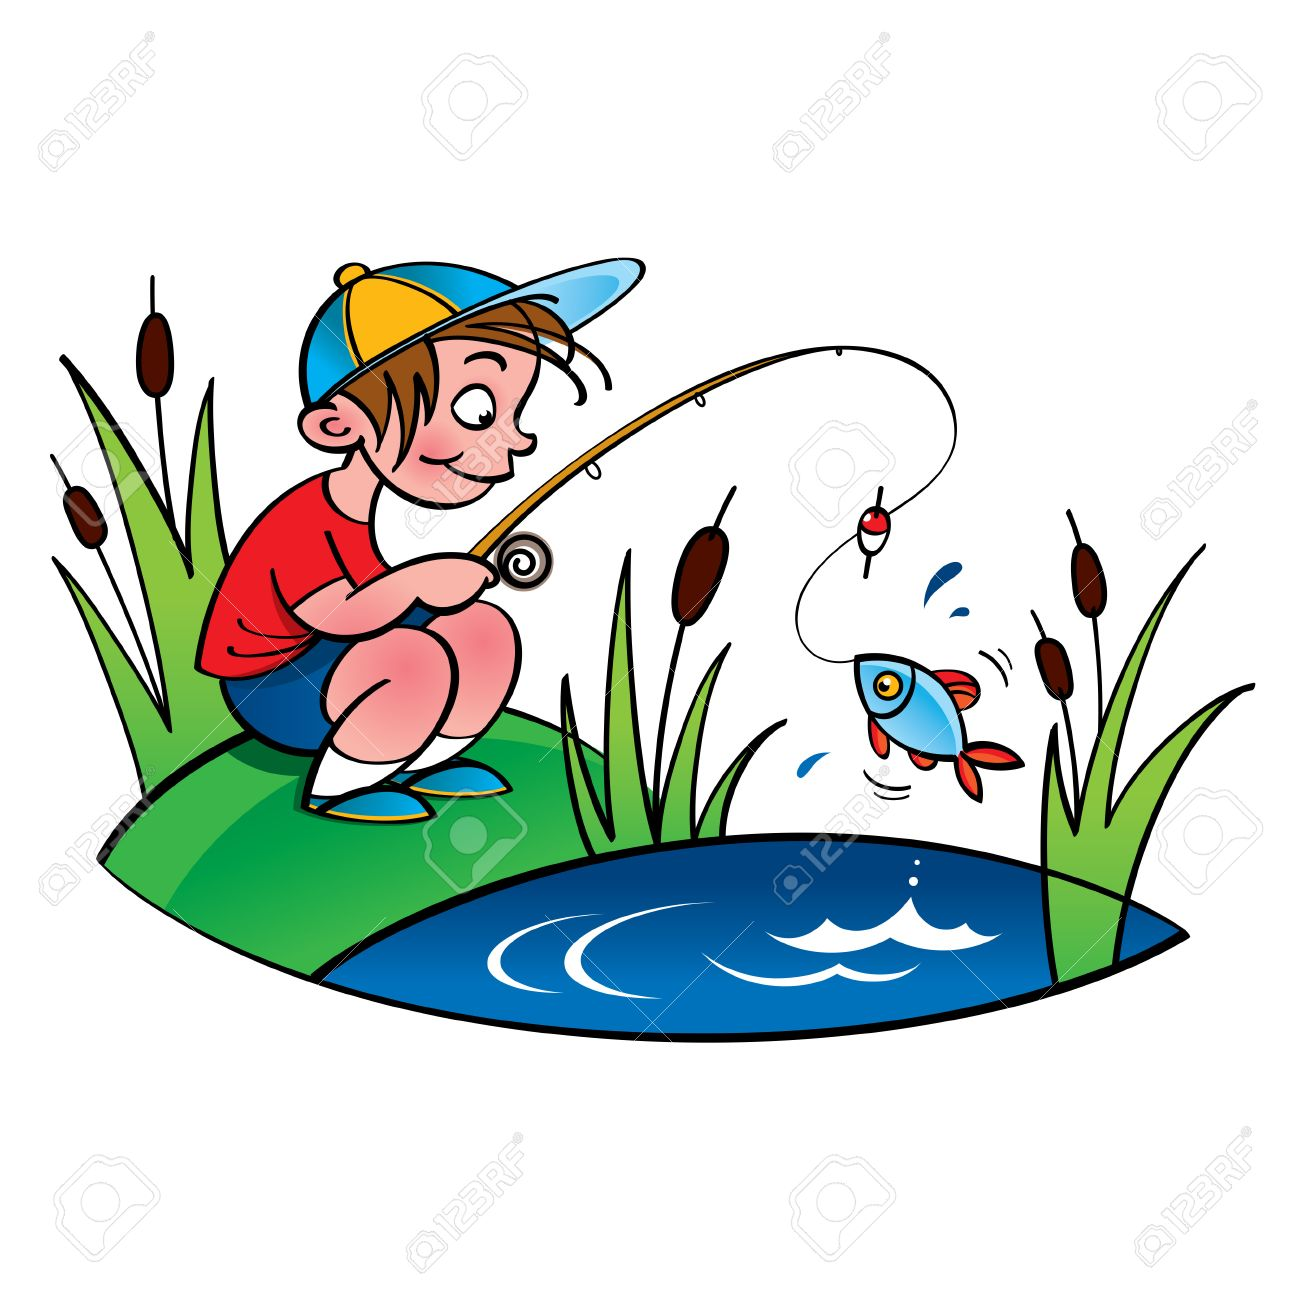 young fisher little boy fishing on the lake royalty free cliparts rh 123rf com